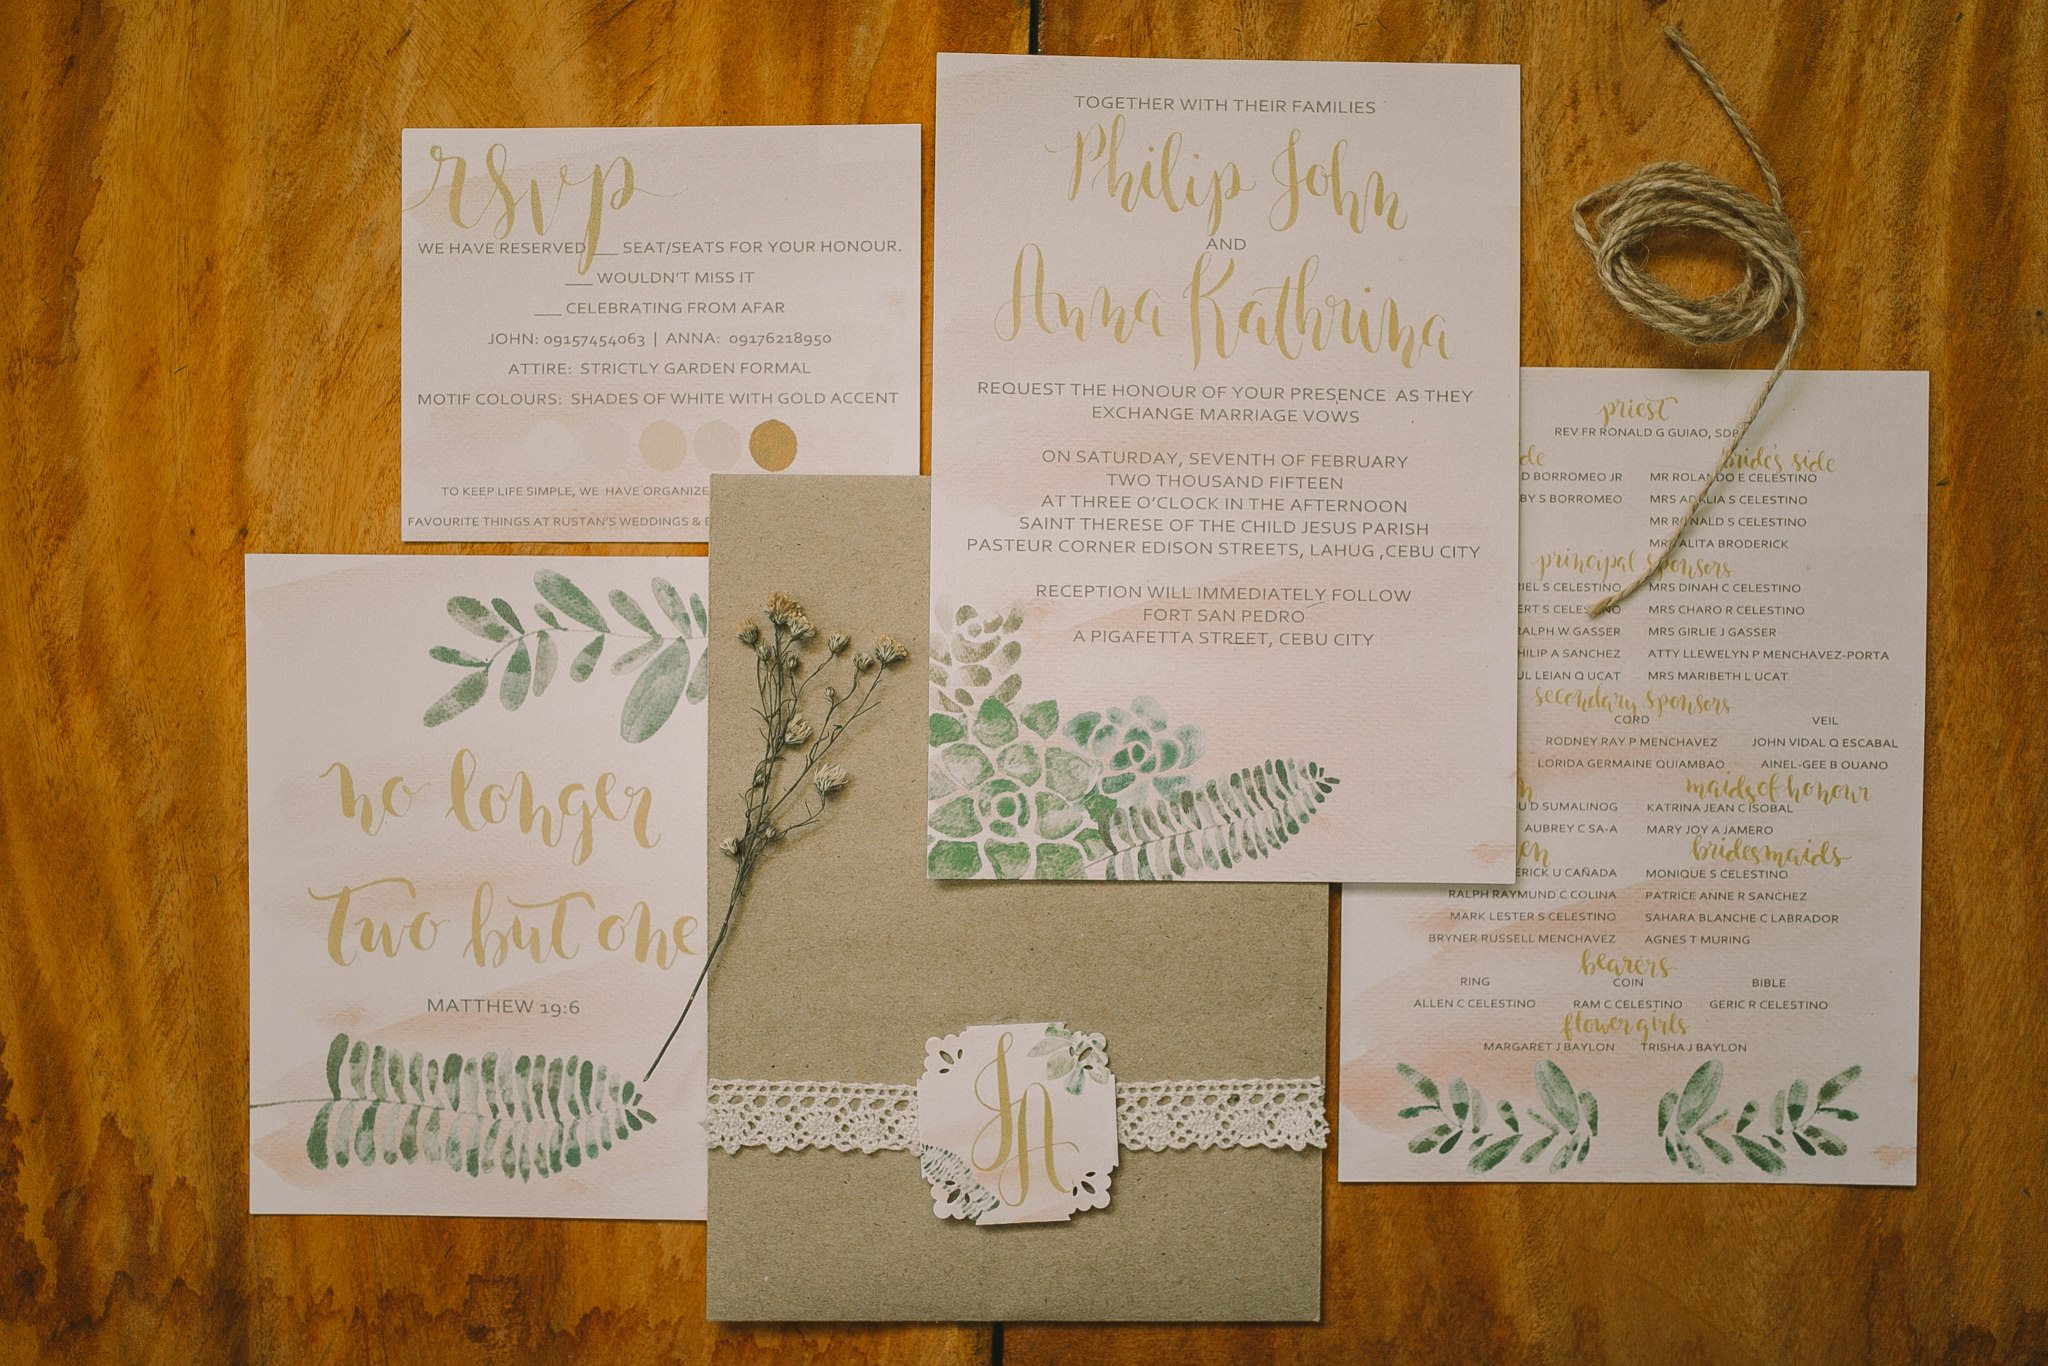 Watercolor And Calligraphy Wedding Invitations By First Of April |  Bridestory.com